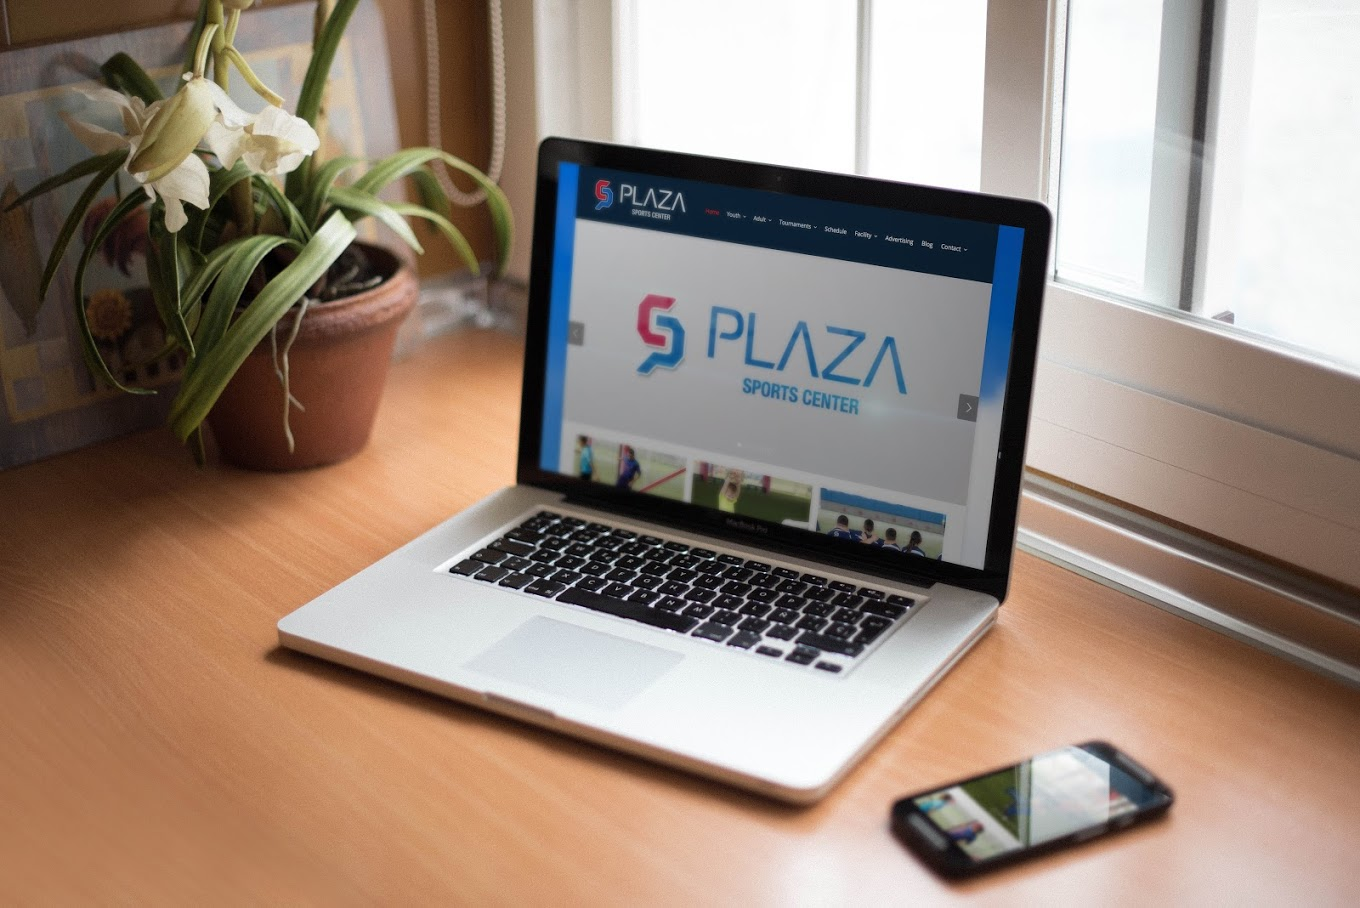 plaza web and phone small business advertising